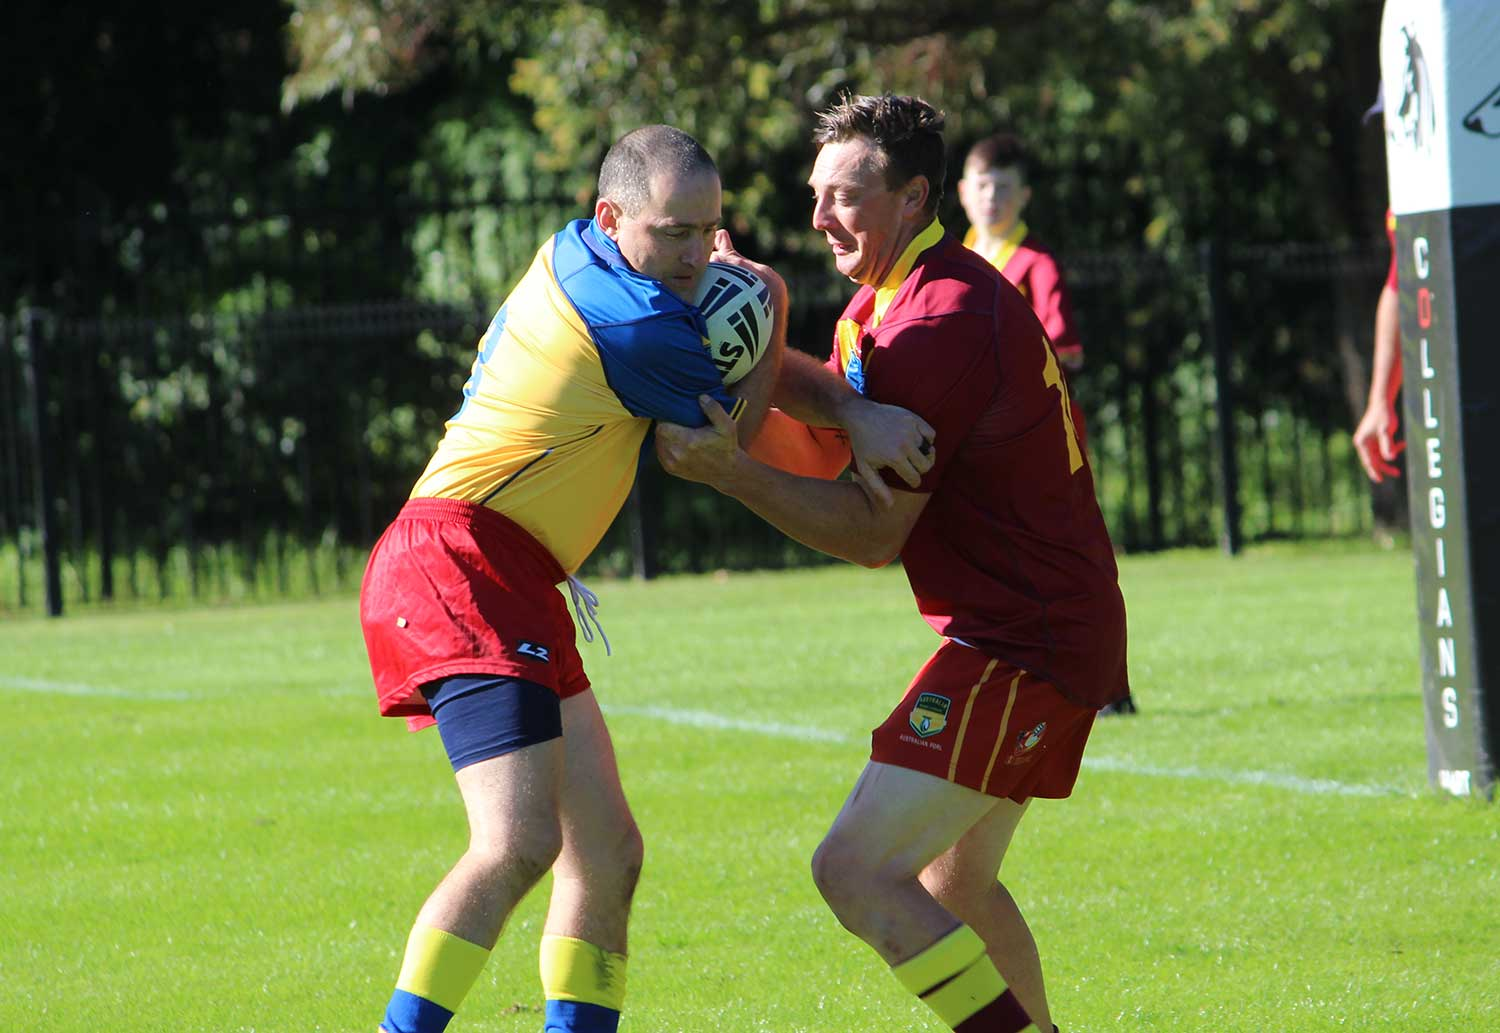 Competing - NSWPDRLA Country vs City 16052021 - Collegians Figtree